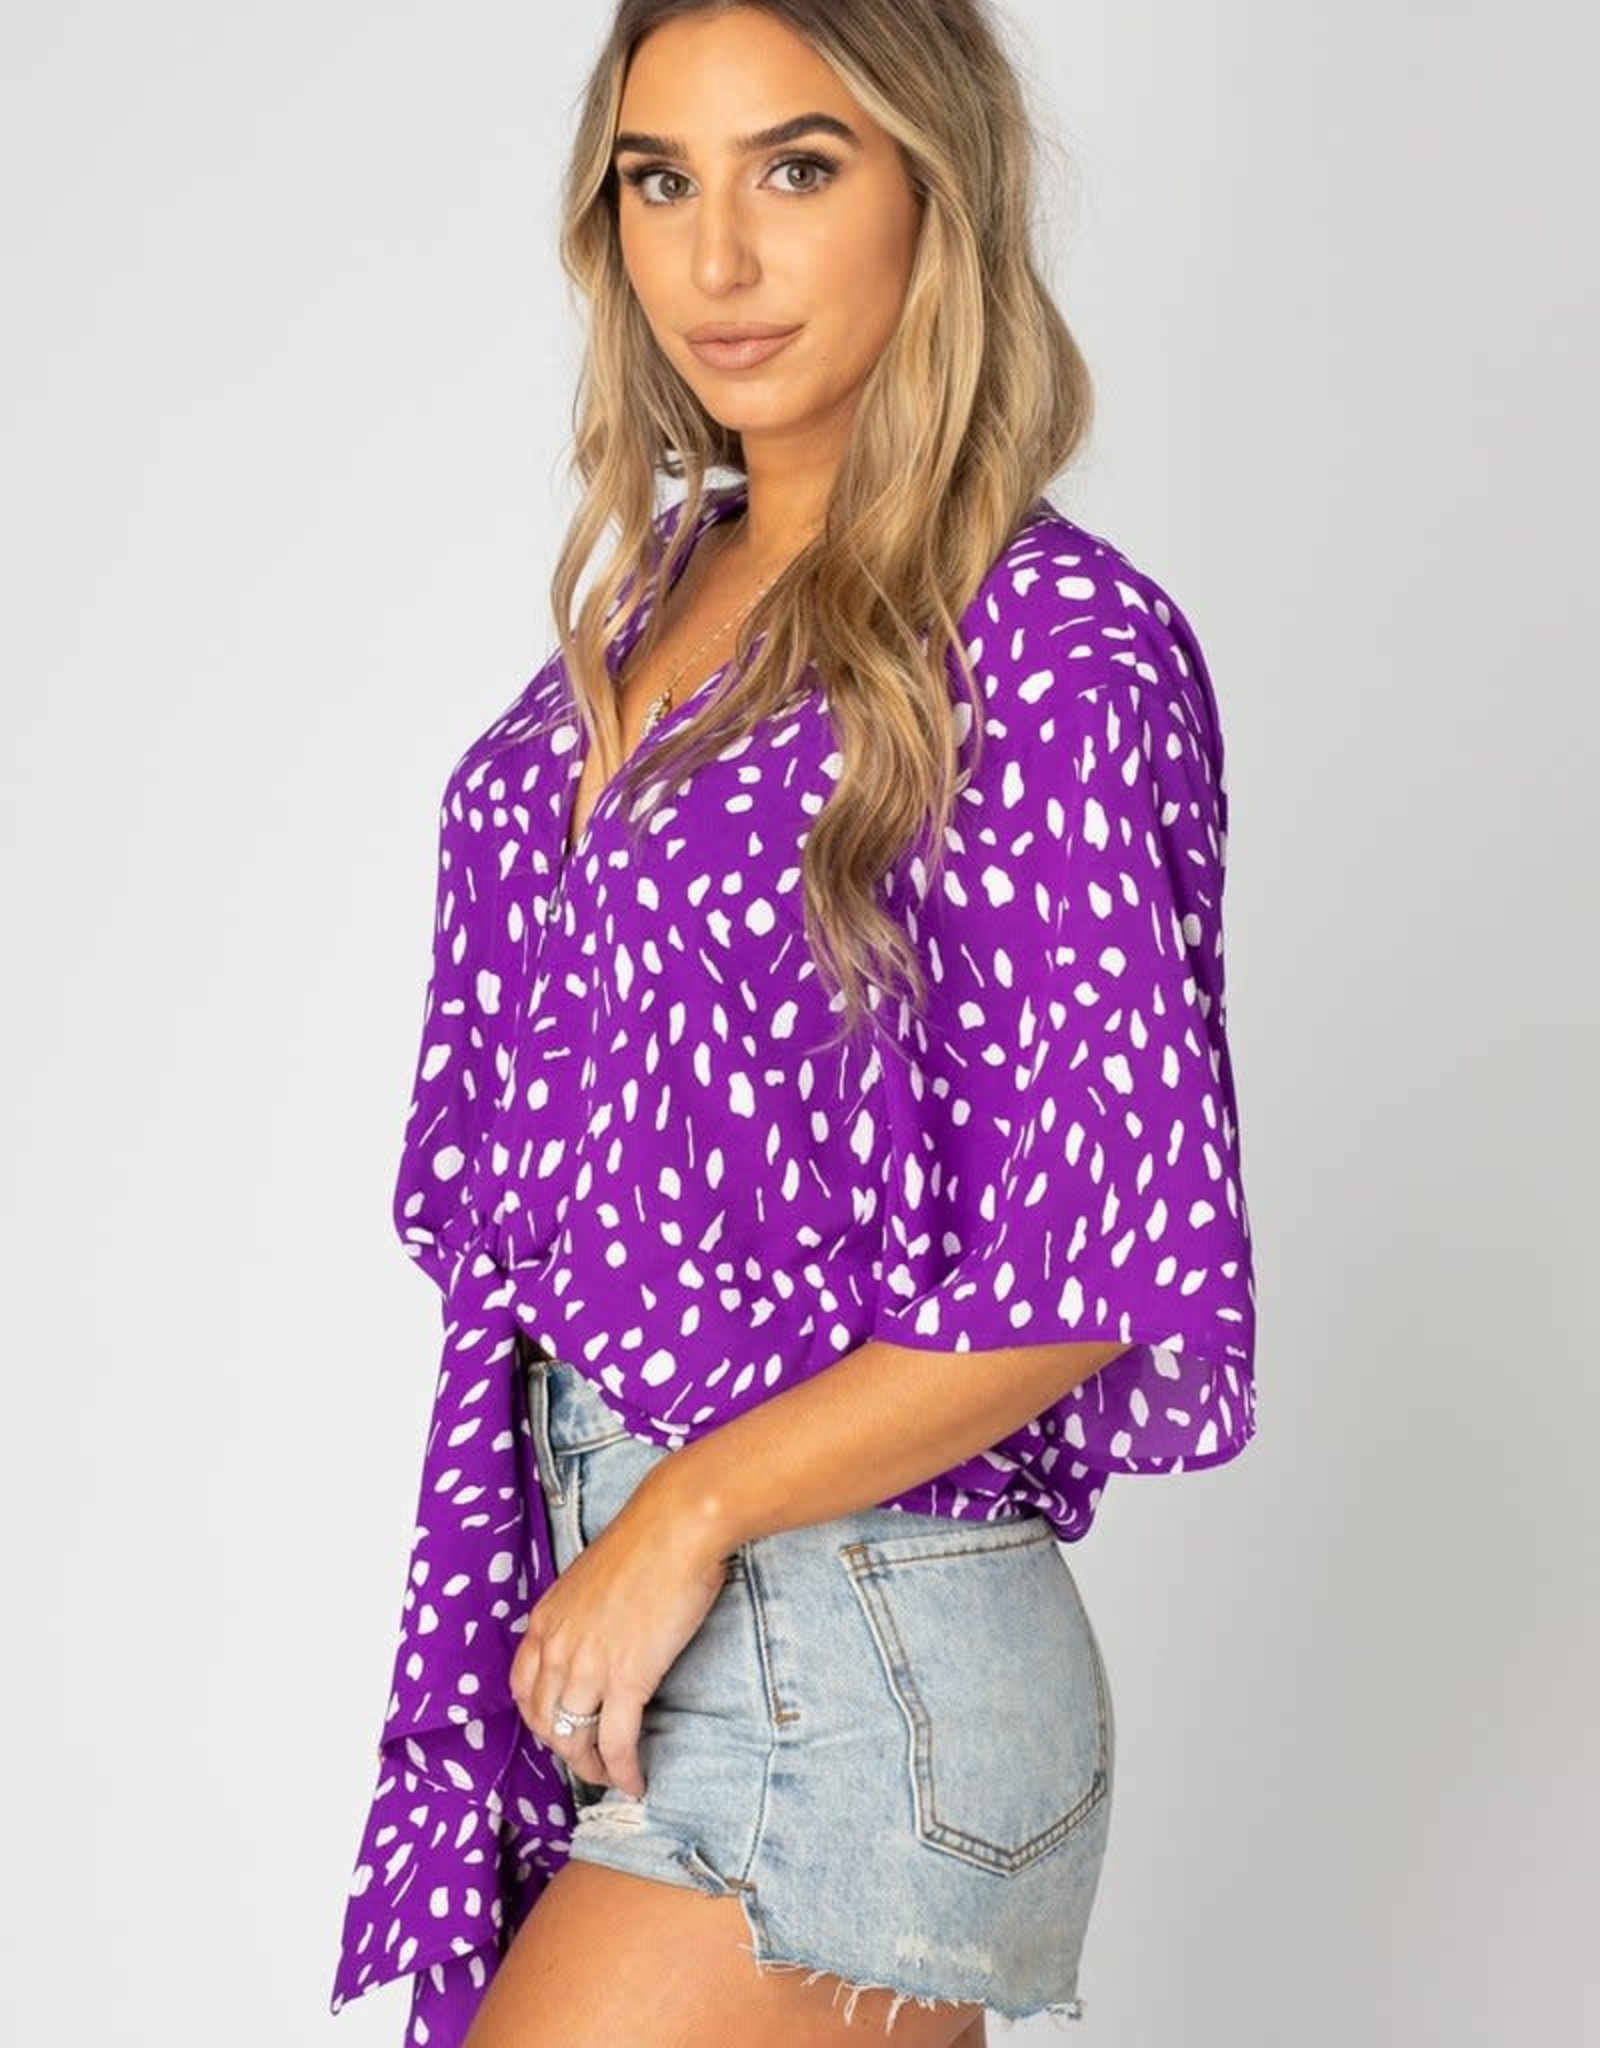 Muse Top - Violet Dots